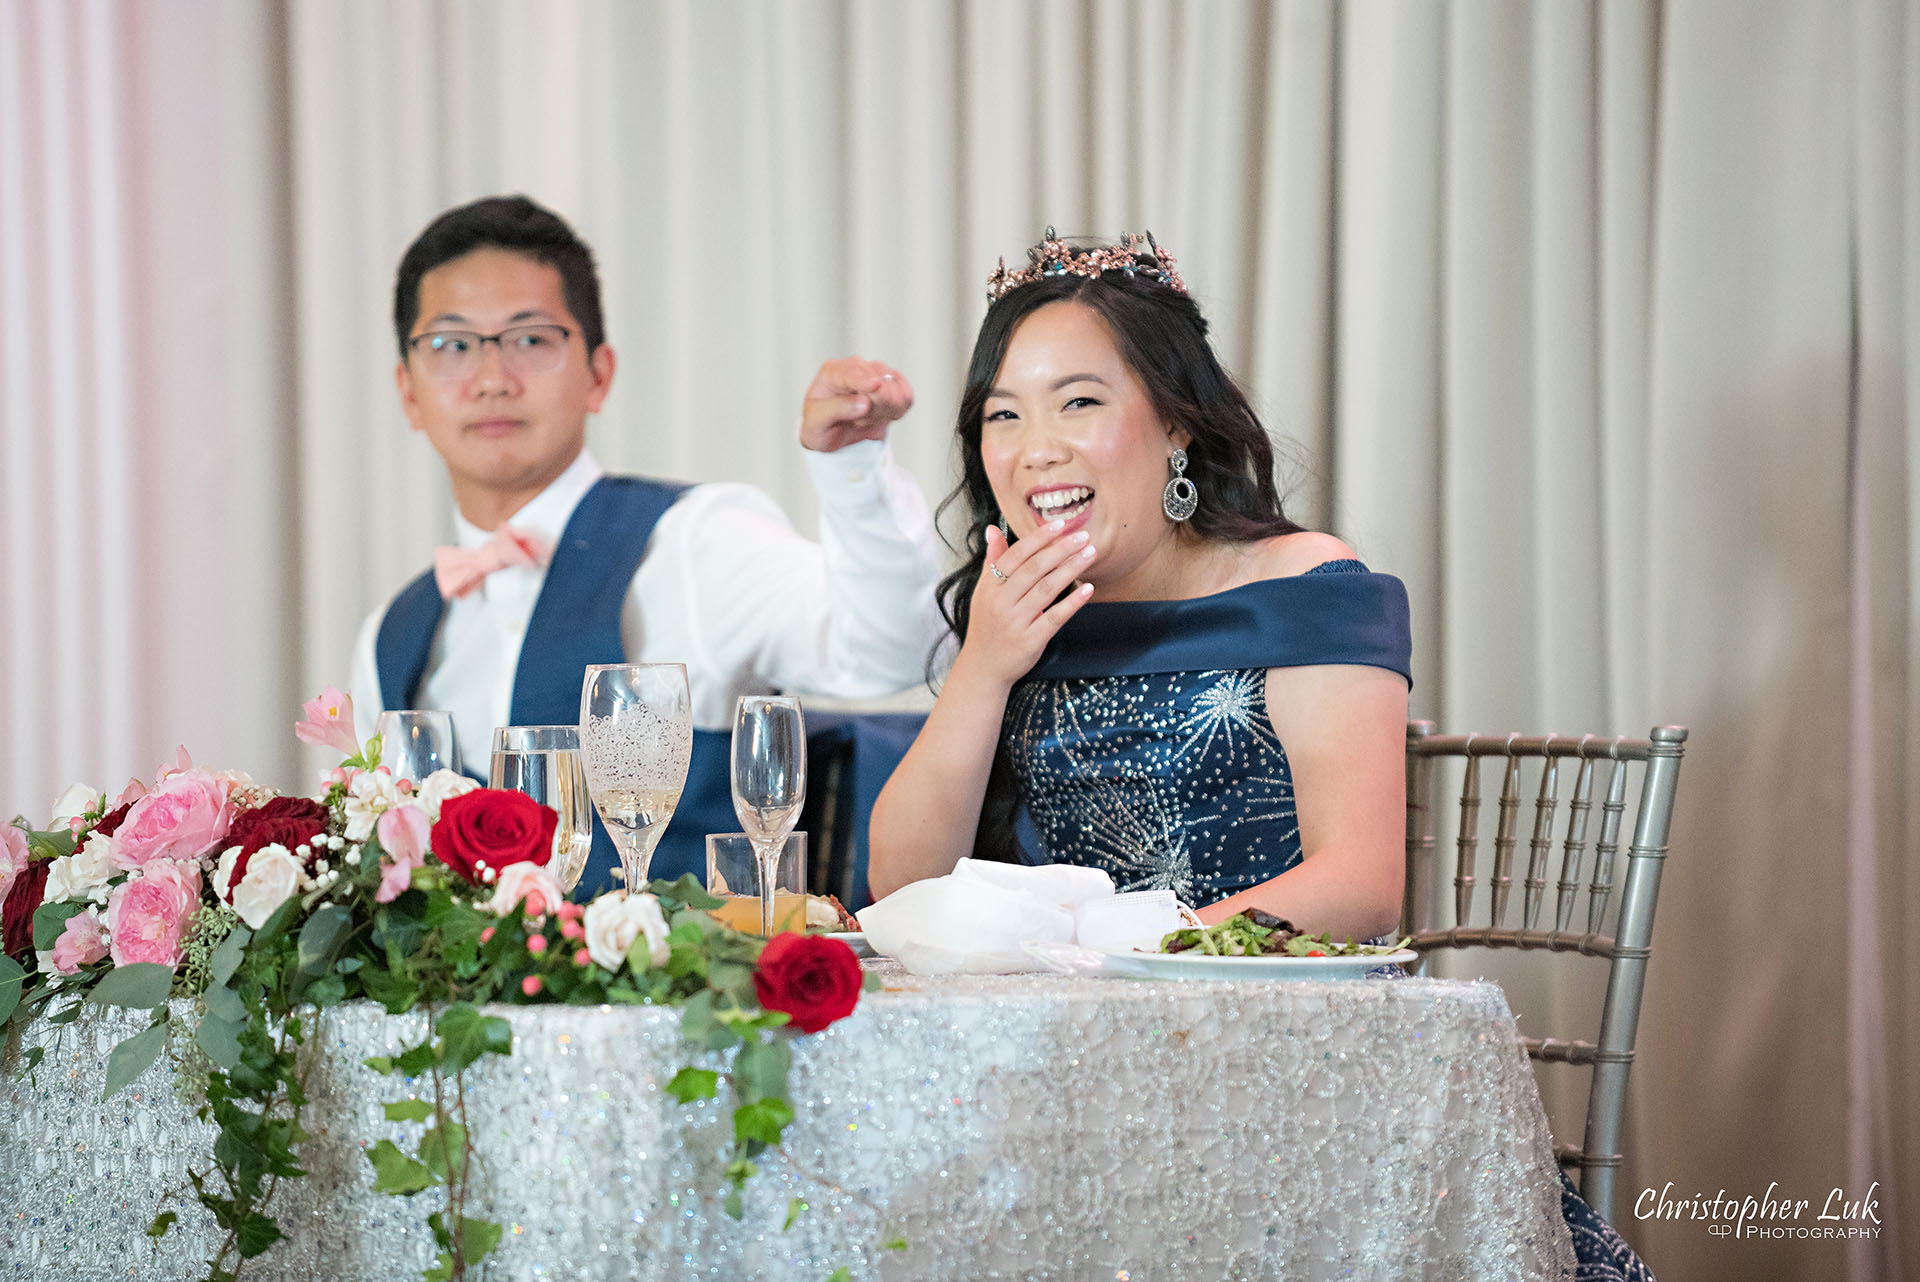 Christopher Luk Toronto Wedding Photographer Bridle Trail Baptist Church Unionville Main Street Crystal Fountain Event Venue Head Table Decor Flower Bell by Masami Crystal Linen Setup Wide Stage Curtains Bride Groom Speeches Laugh Reaction Pointing Funny